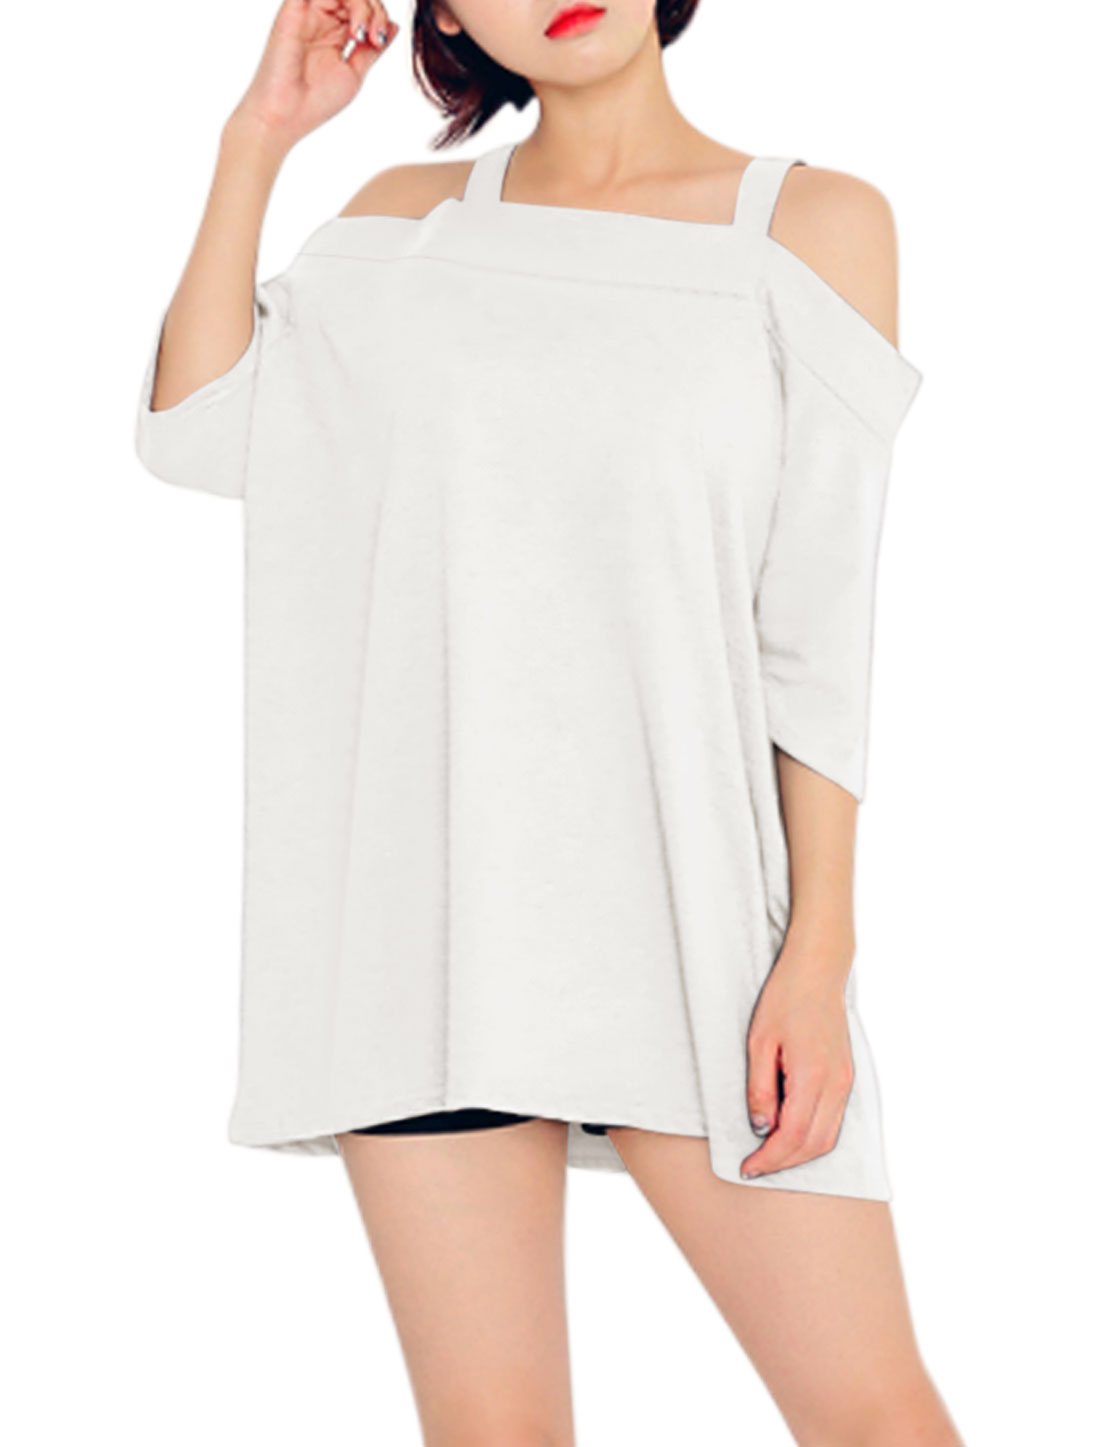 Women Straps Off Shoulder 3/4 Sleeves Loose Tunic Top White L